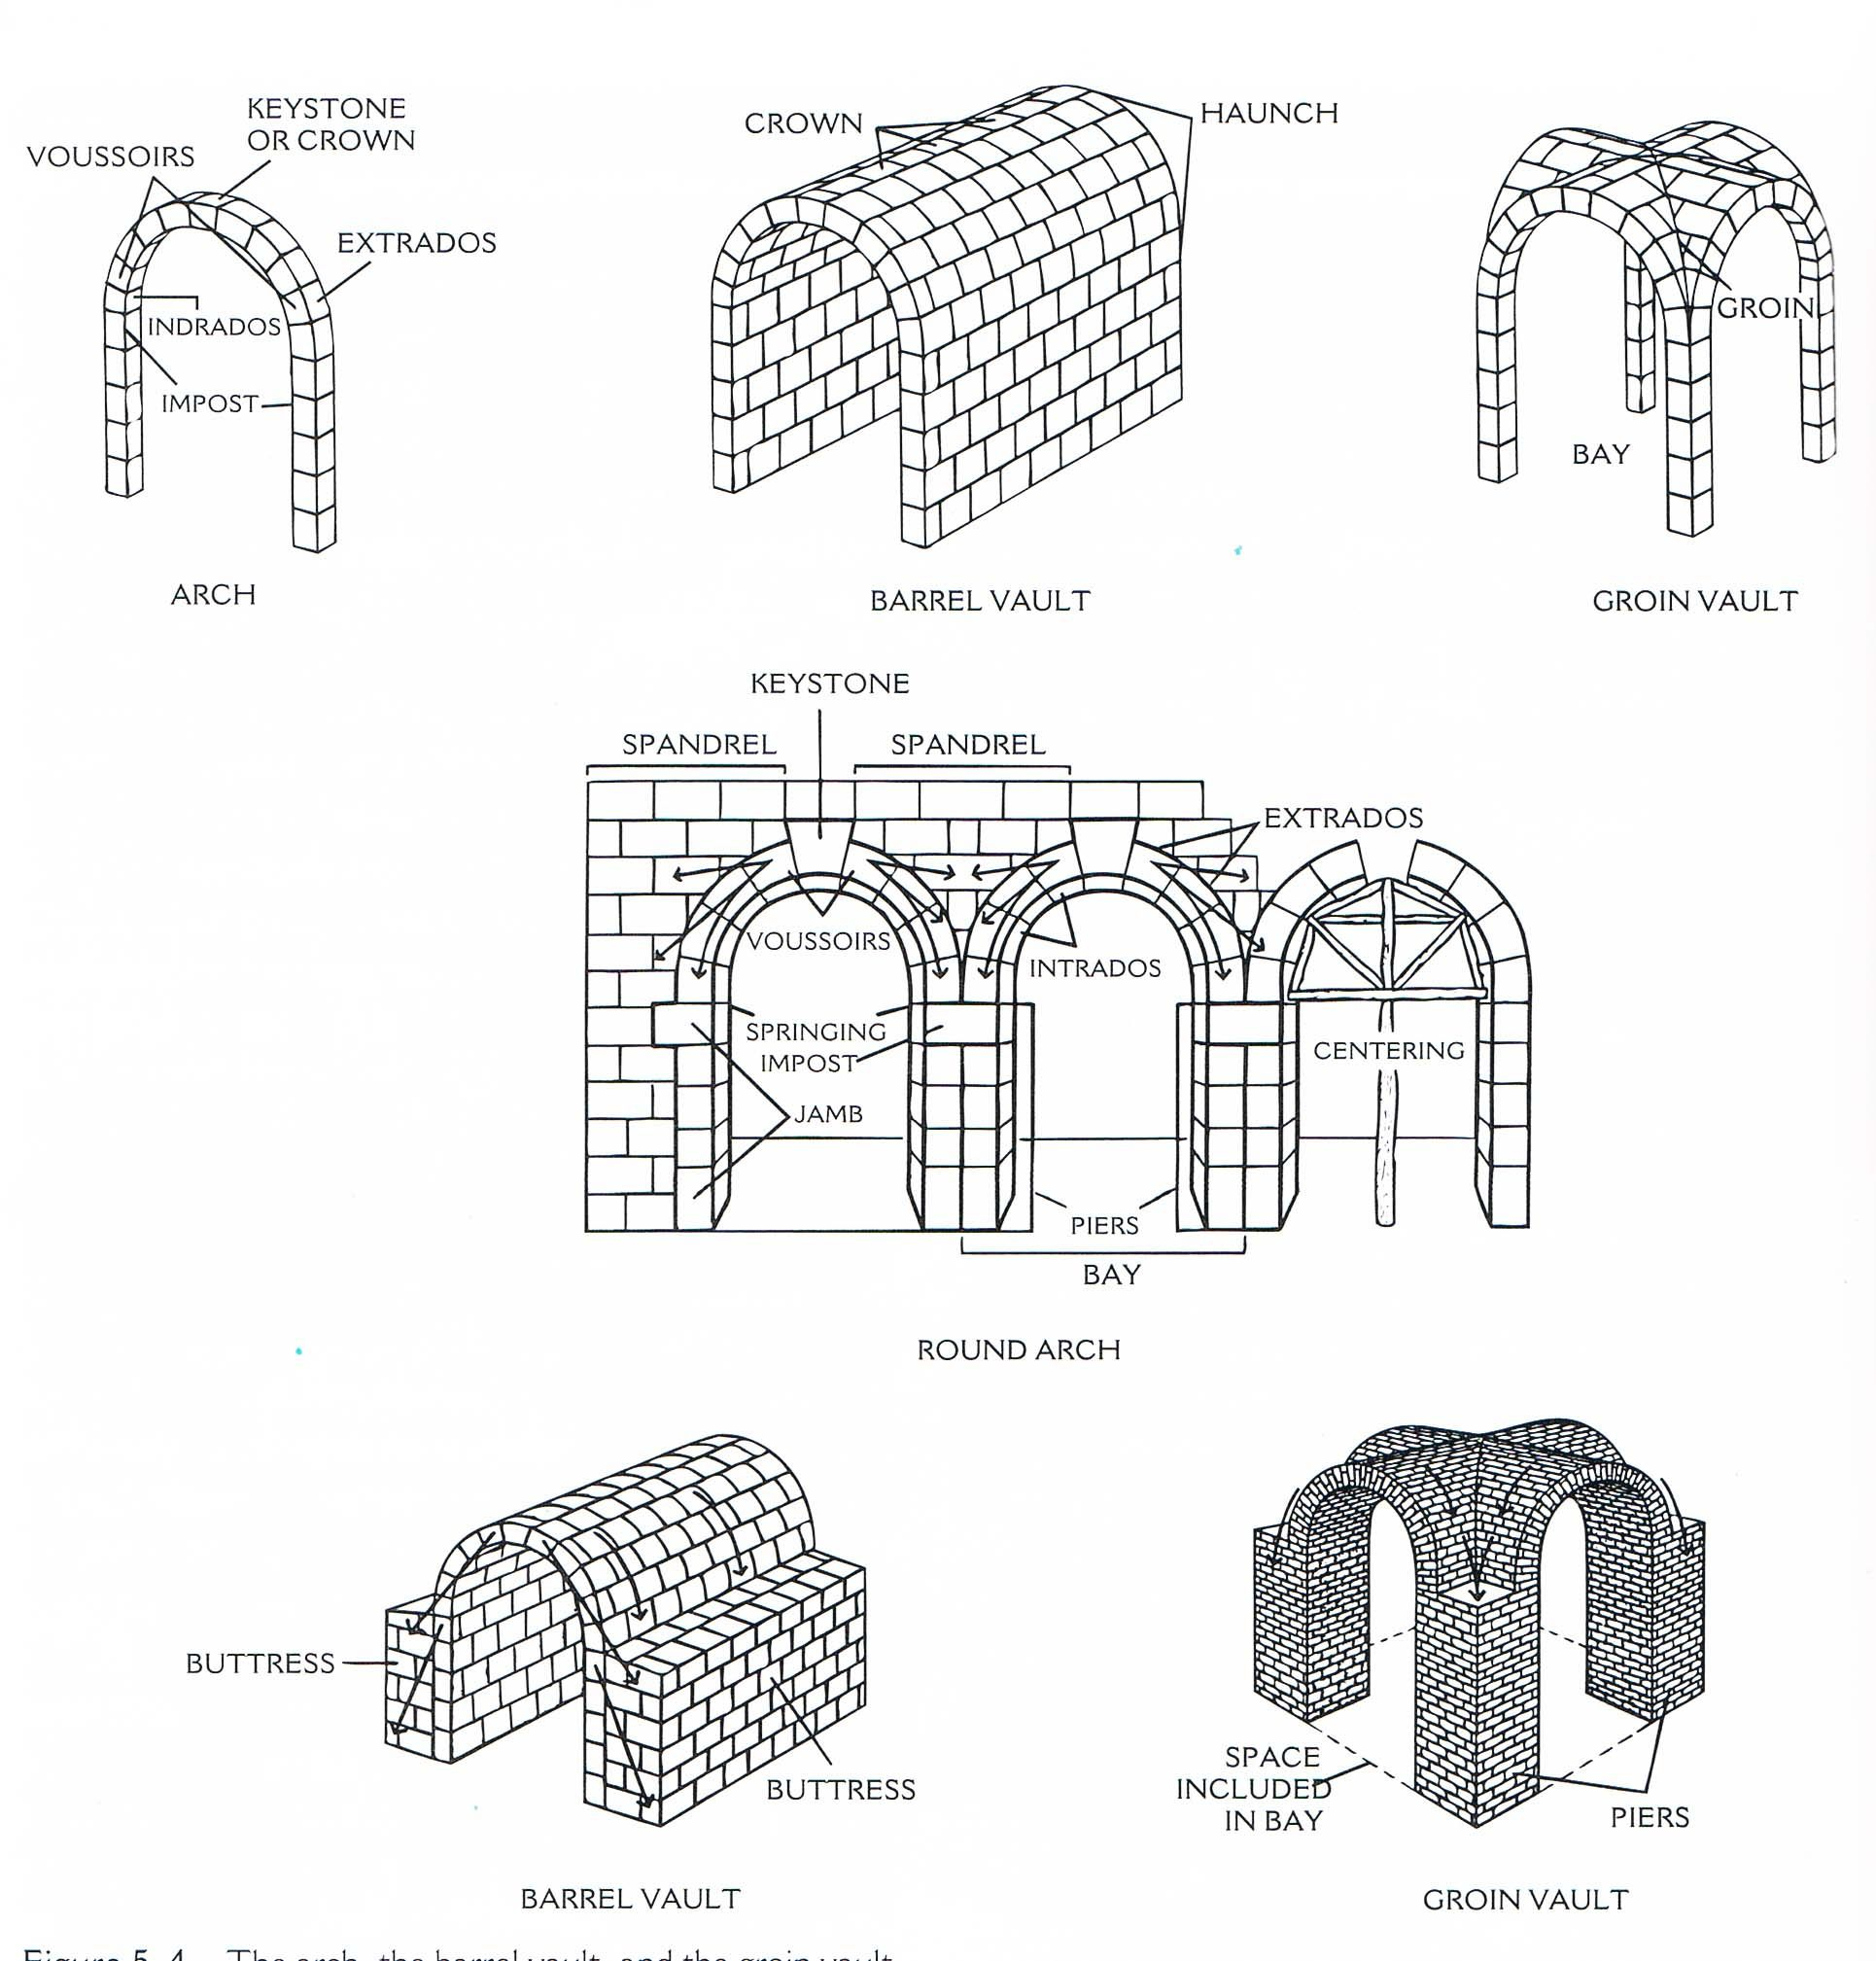 Arches Are Used To Create Barrel Vaults Groin Vaults And Bays